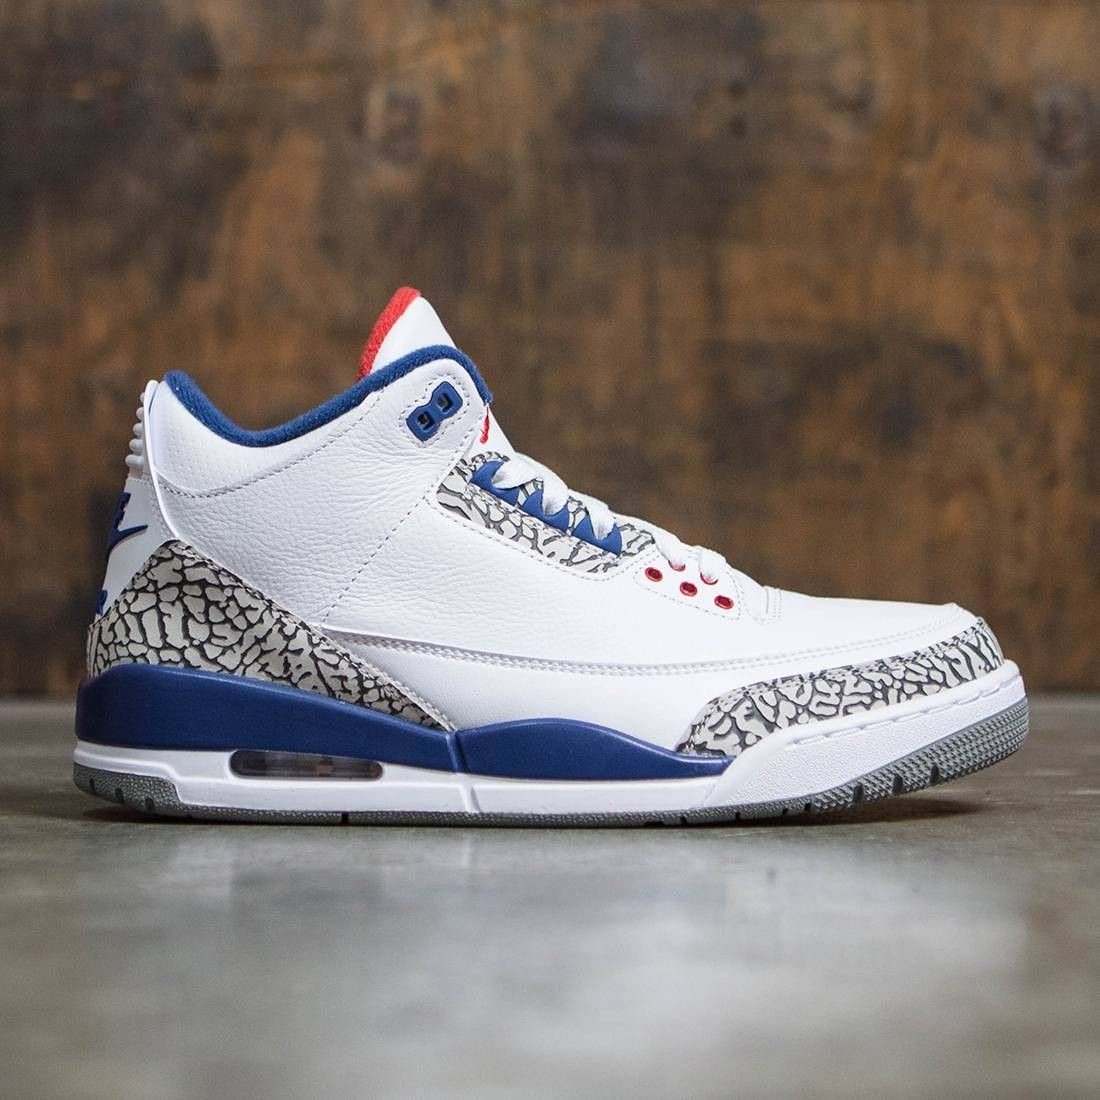 4e0faa81d30c Jordan Men Air Jordan III Retro True Blue OG (white   fire red-true  blue-cement grey)